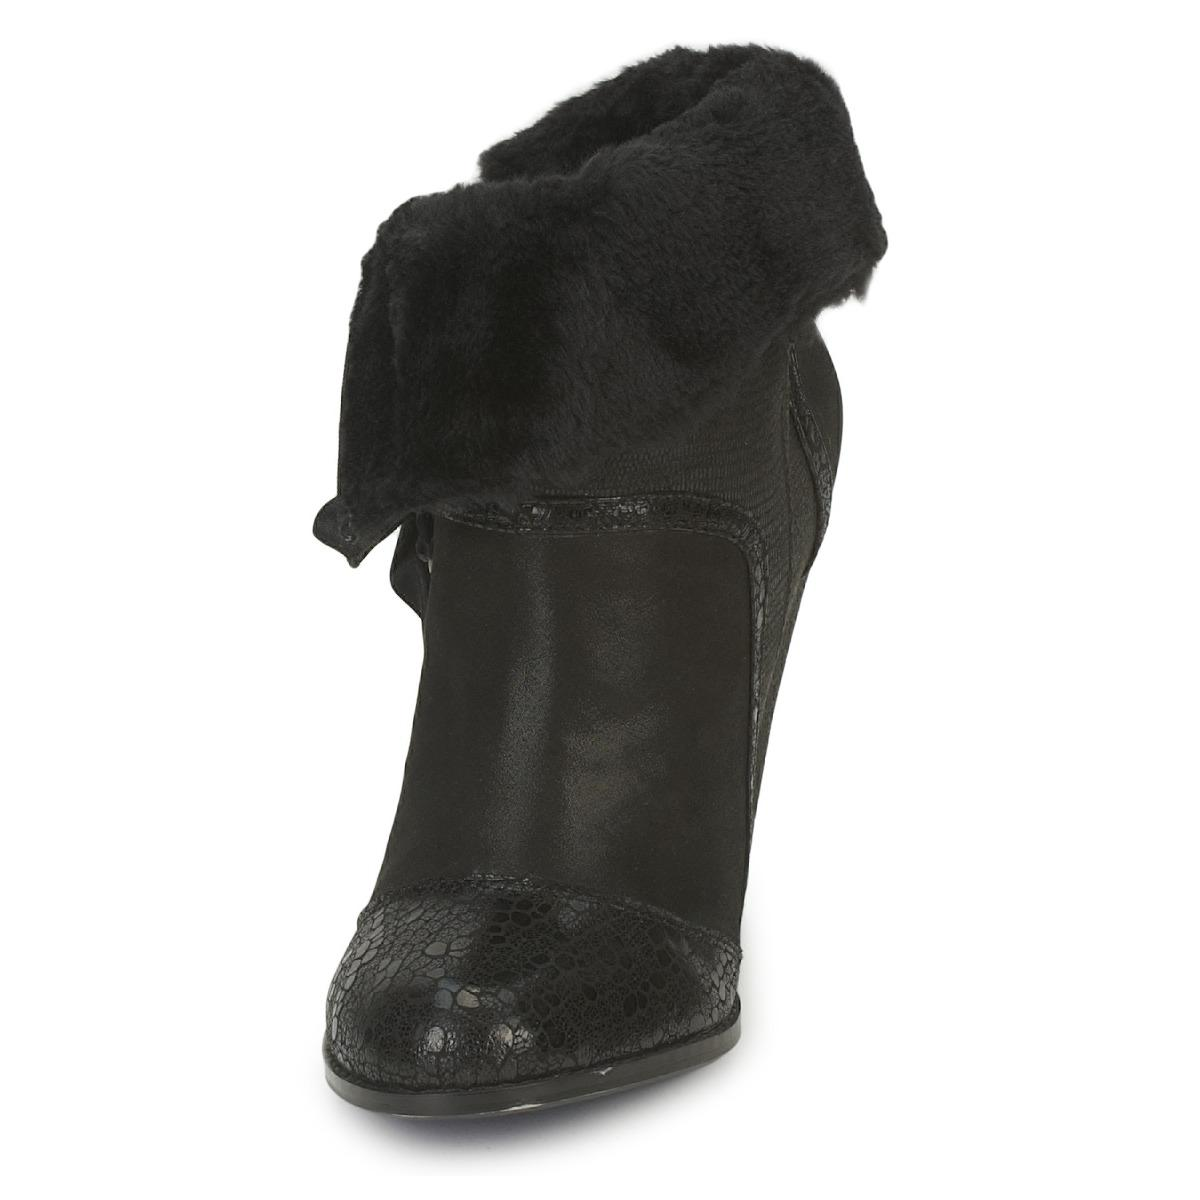 Poetic Licence Leather Most Wanted Women's Low Ankle Boots In Black